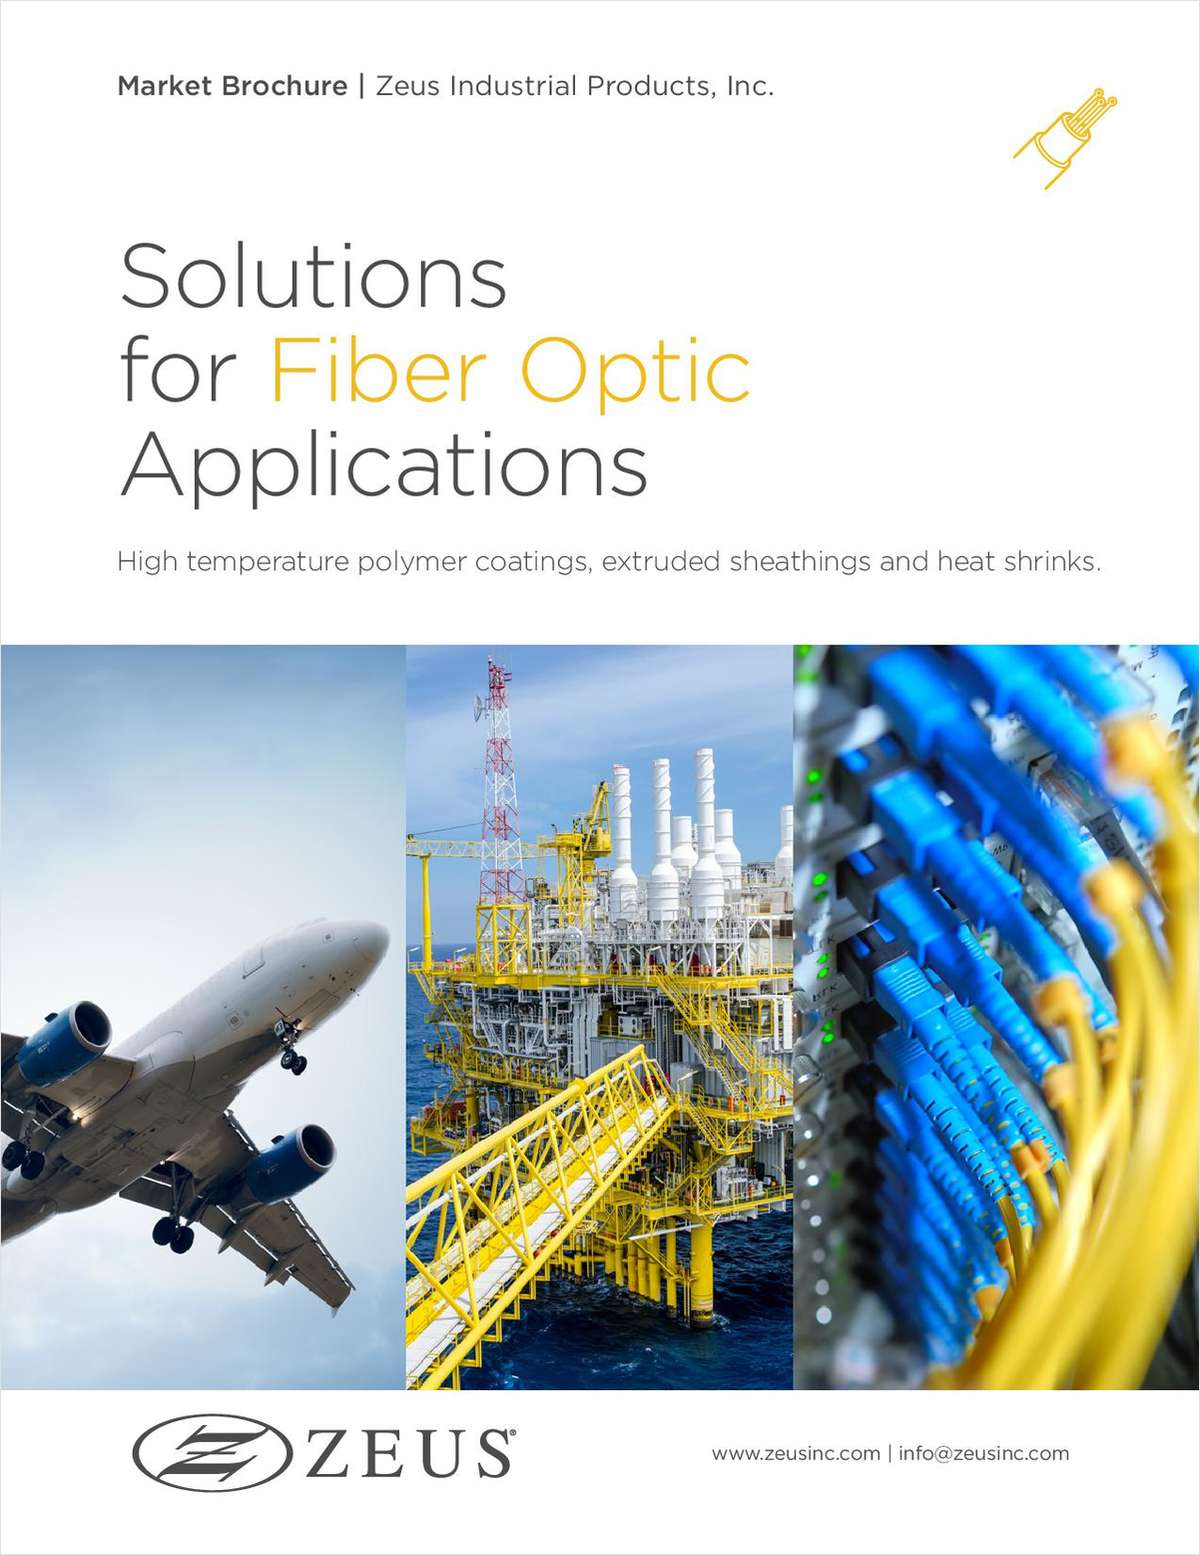 Custom solutions for Fiber Optic performance: High temperature polymer coating and sheathing products that protect and support the latest fiber optic technology.